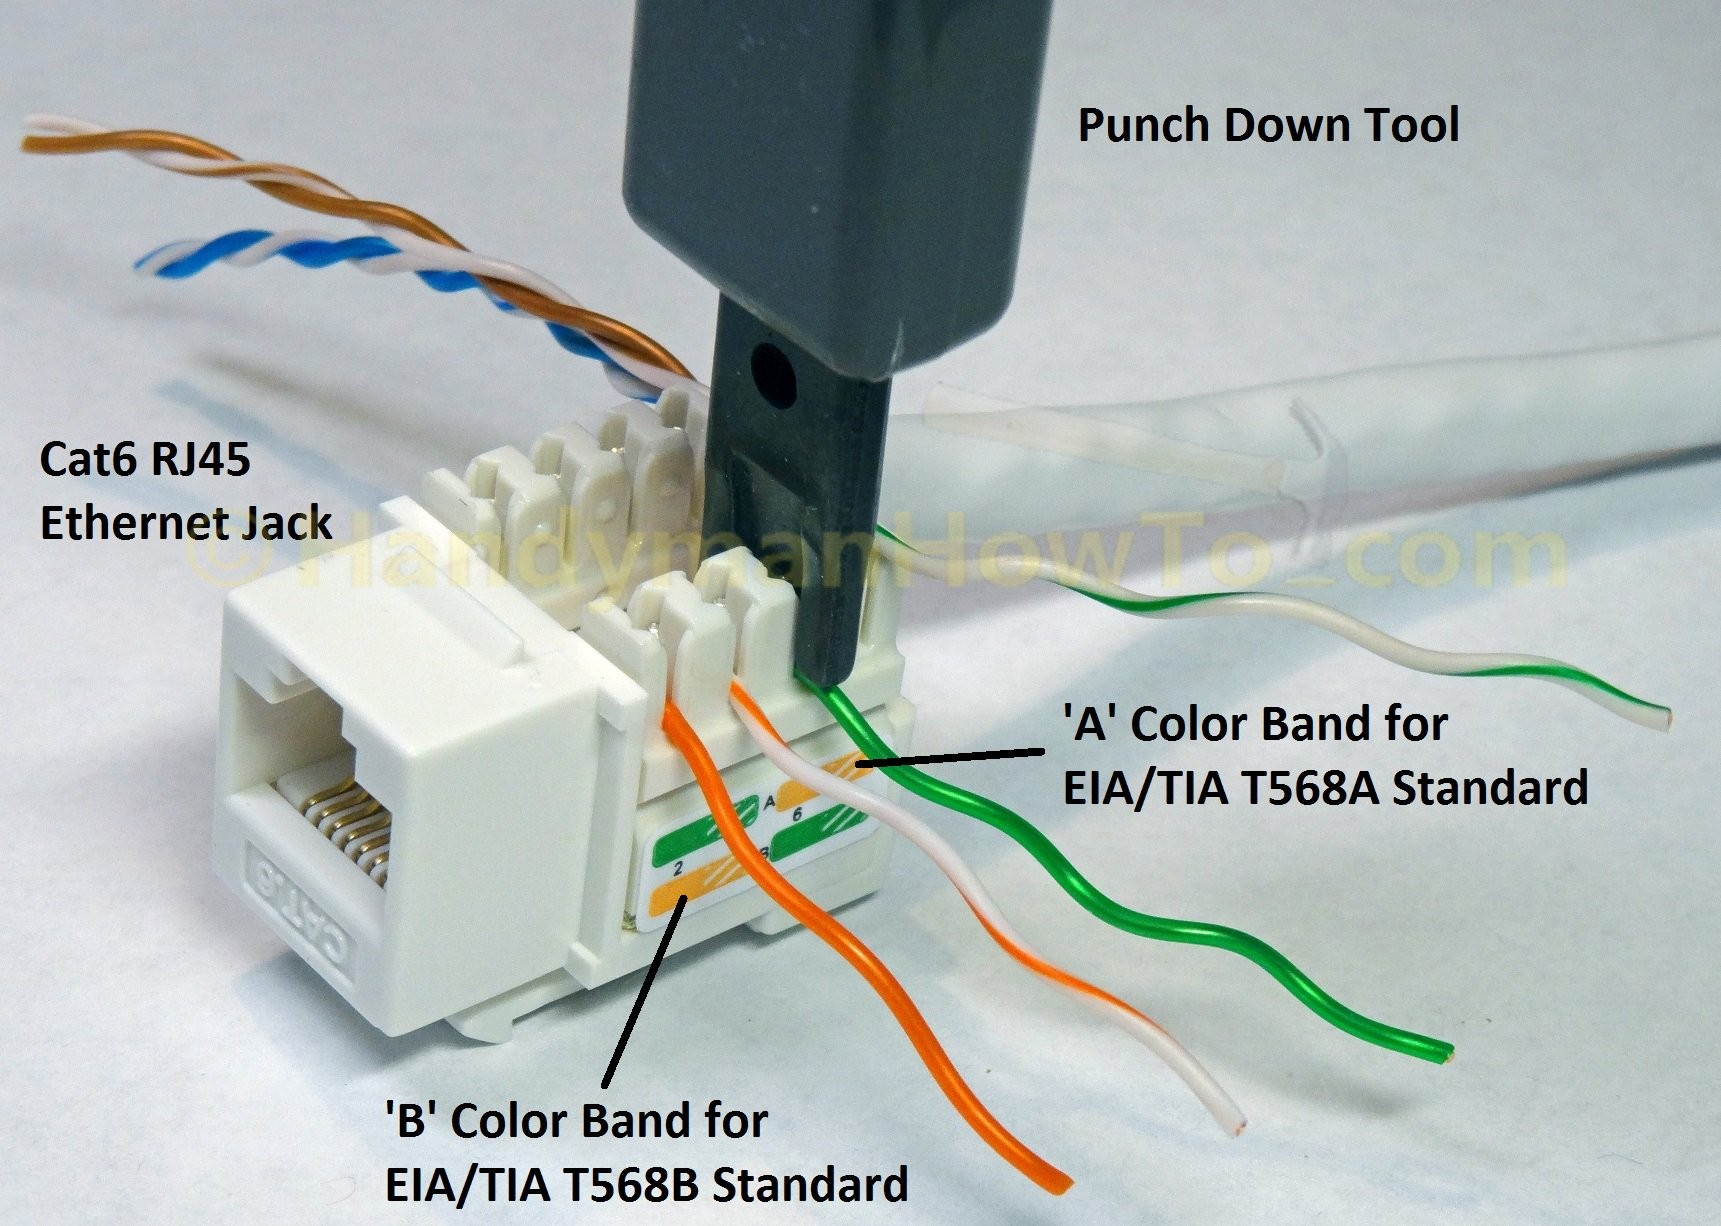 cat 5 wiring diagram wall jack my wiring diagram rh detoxicrecenze com Cat 5 Cable Wall Jack Ethernet Wall Jack